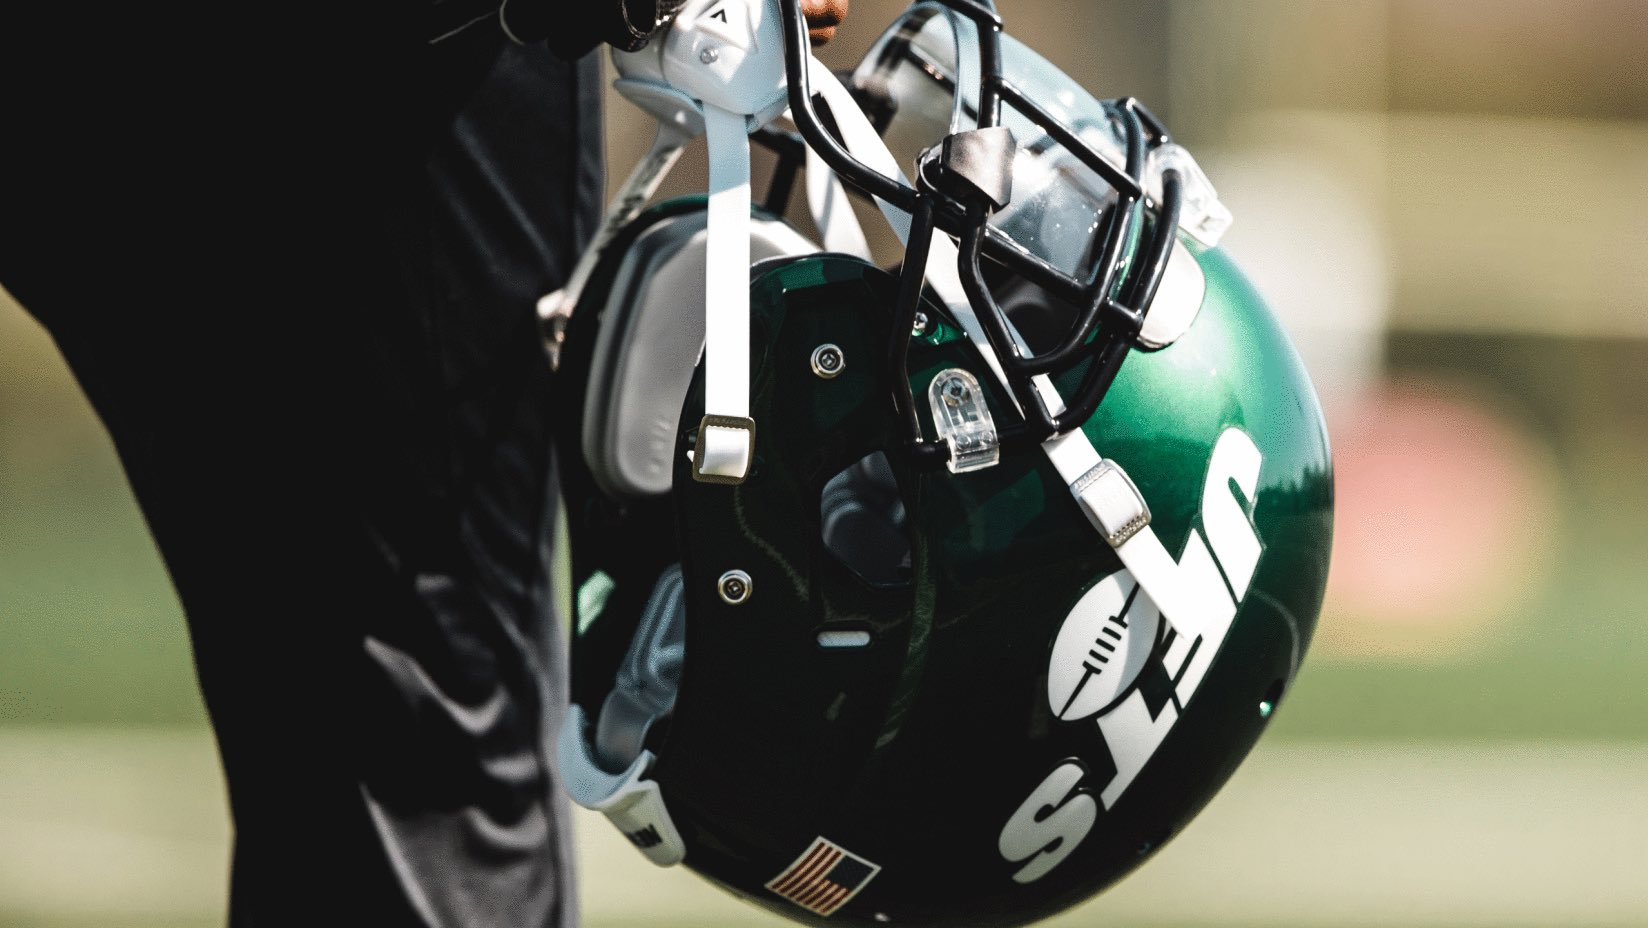 d006e5b4a3 Official Site of the New York Jets